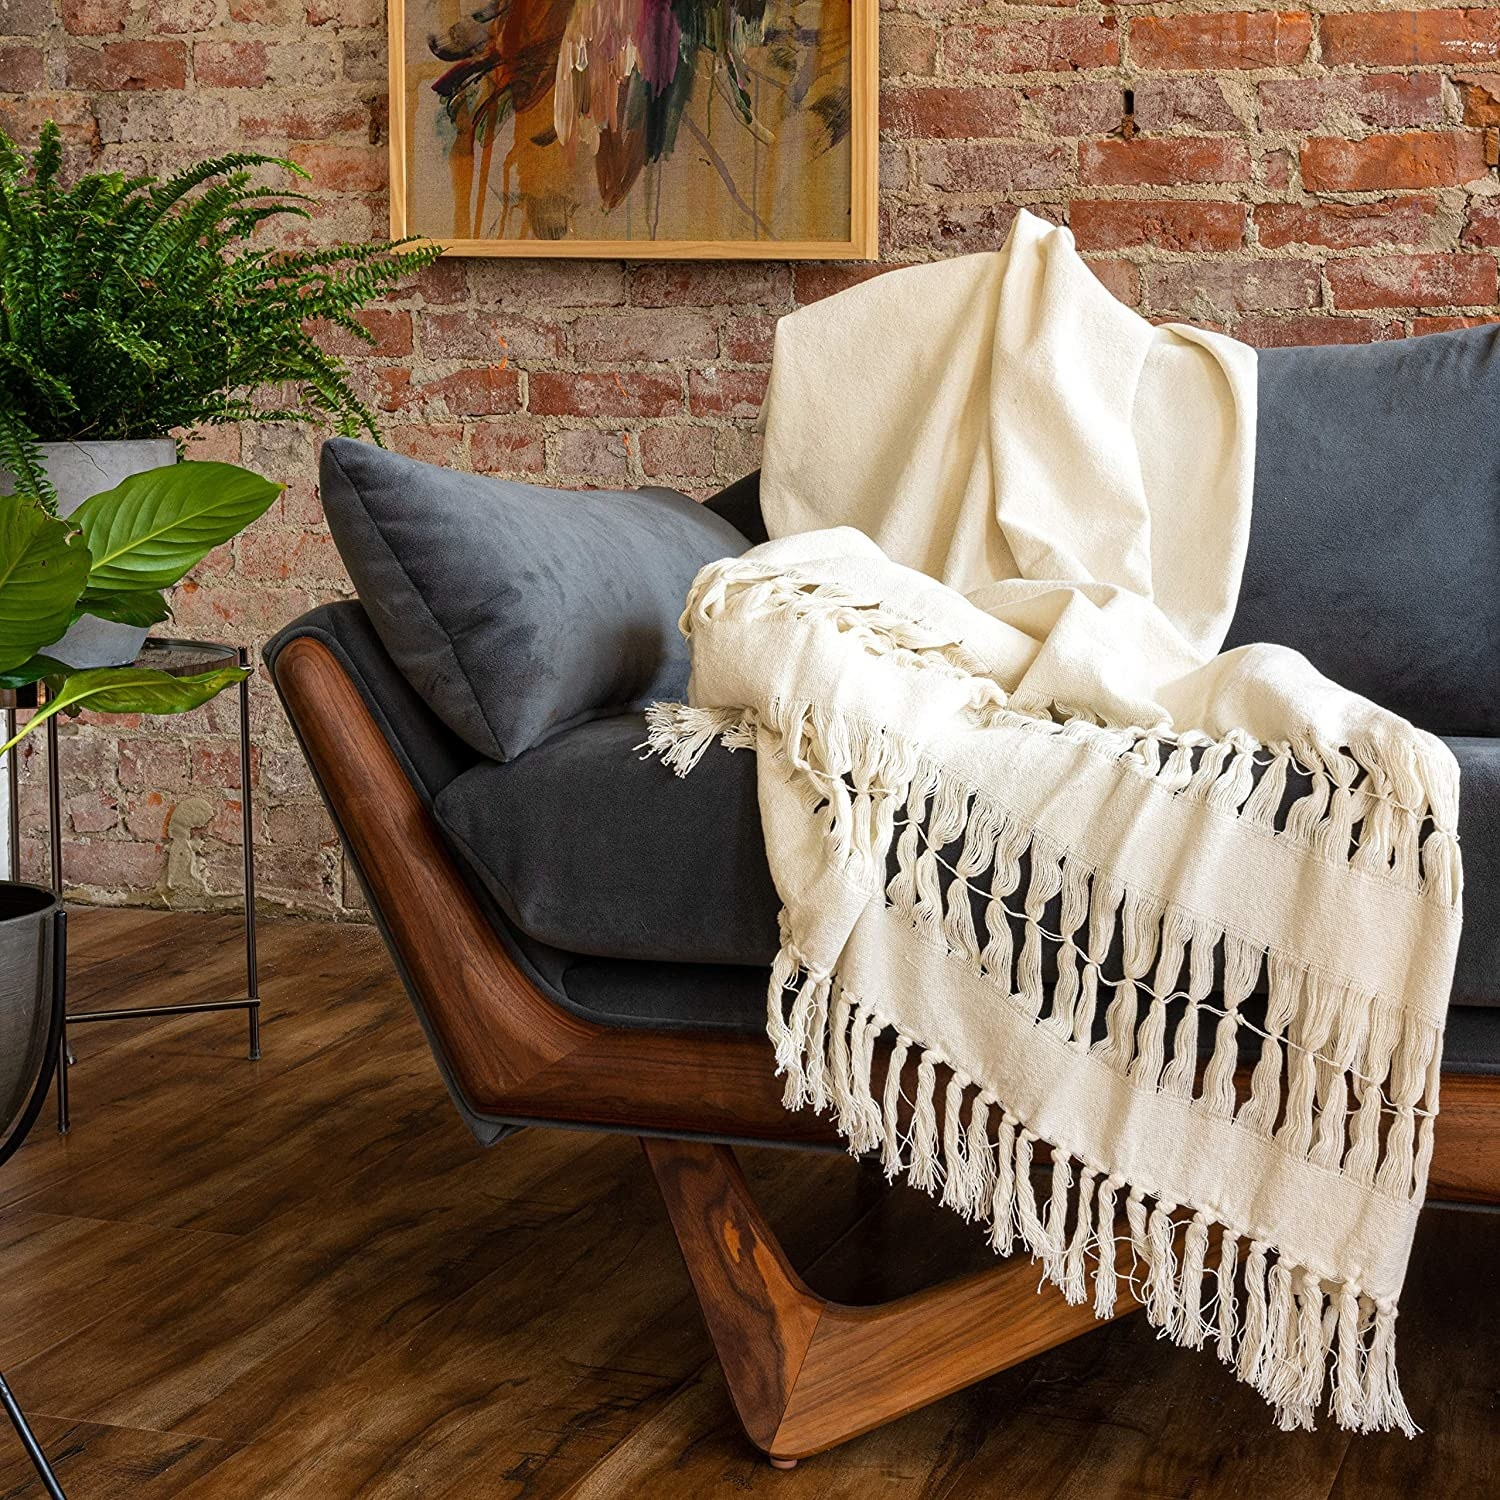 Tasseled throw blanket with woven fabric in throughout edges and center